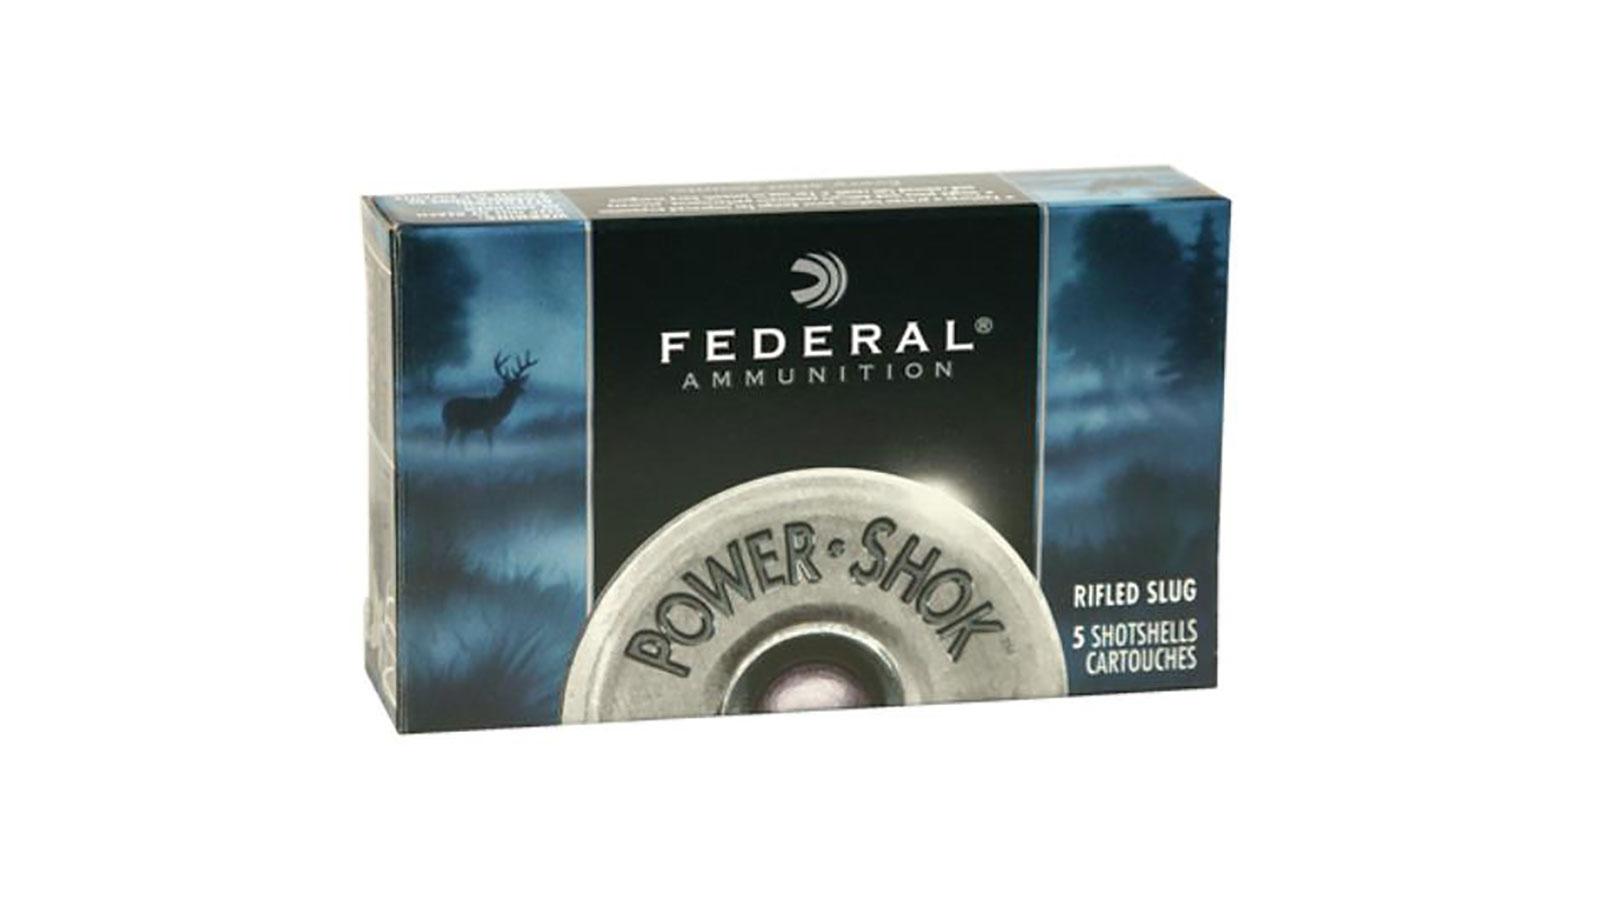 Federal F103FRS Power-Shok Rifled Slug 10 Gauge 3.5 1-3|4 oz Slug Shot 5 Bx| 50 Cs in.